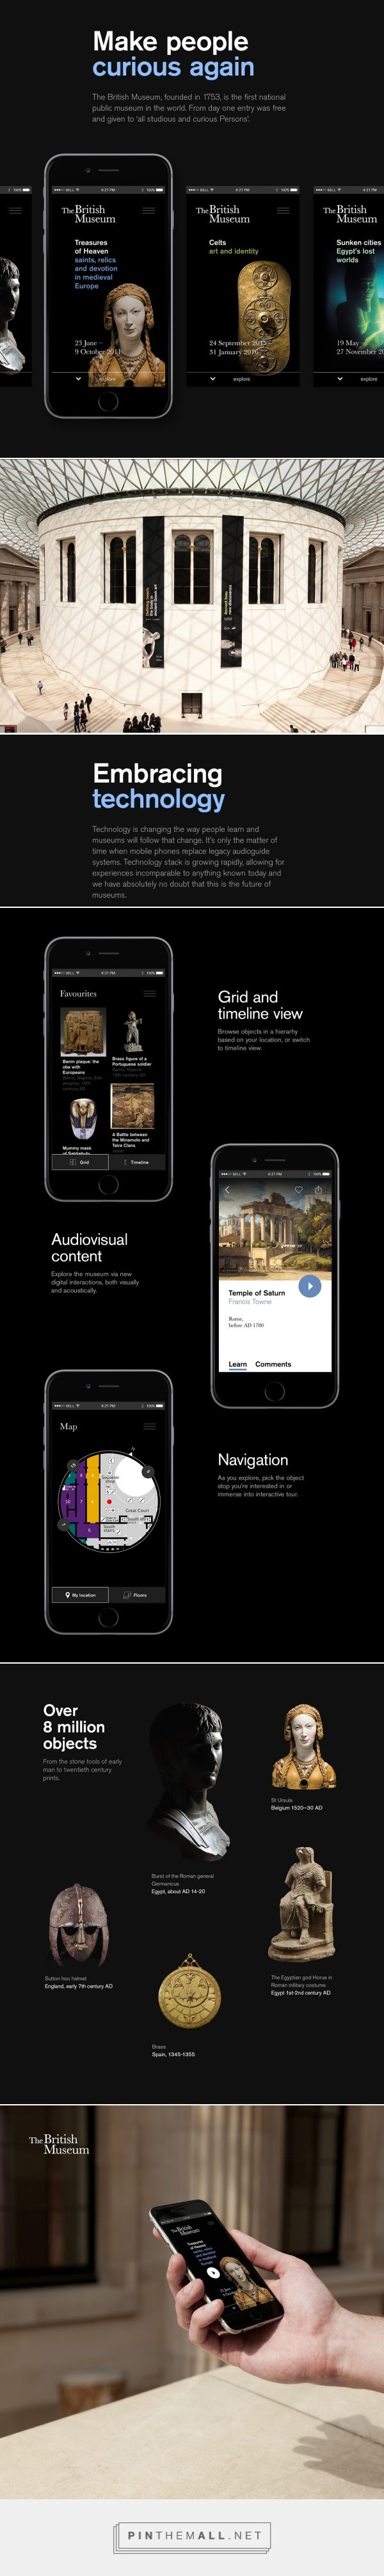 British Museum - iOS App Concept | Abduzeedo Design Inspiration - created via https://pinthemall.net